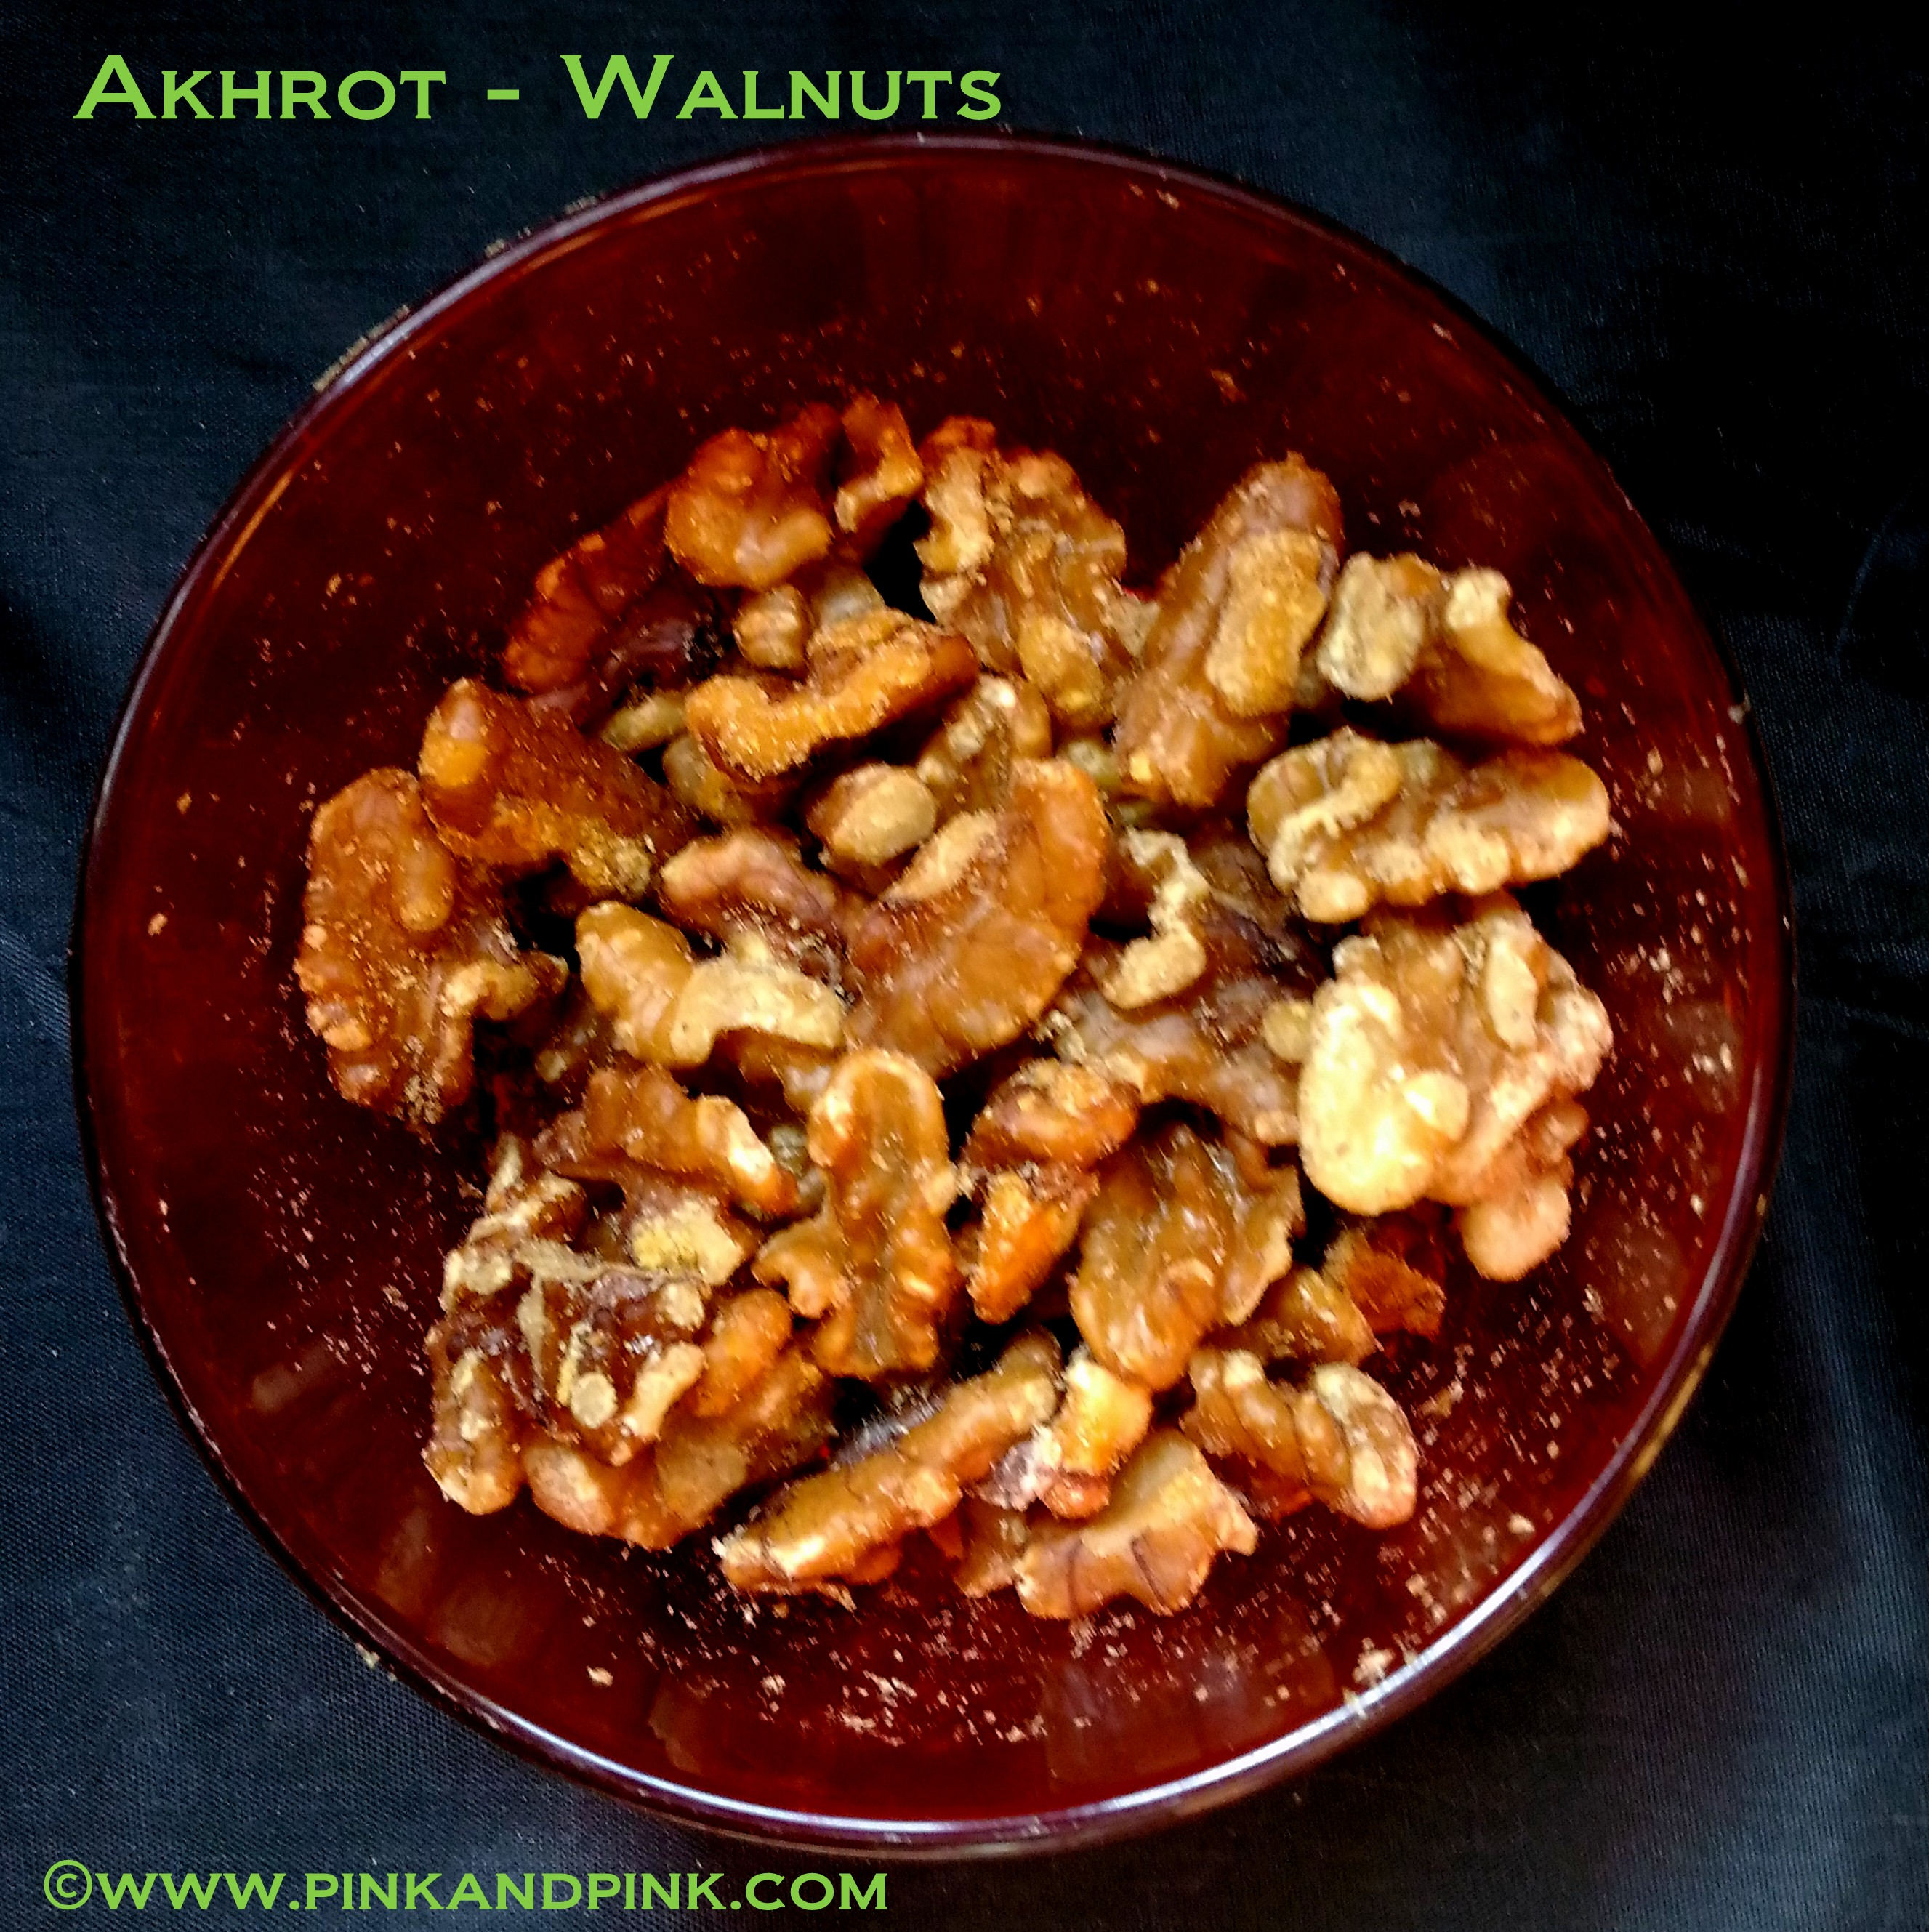 Akhrot Health Benefits Hindi - Benefits of Akhrot